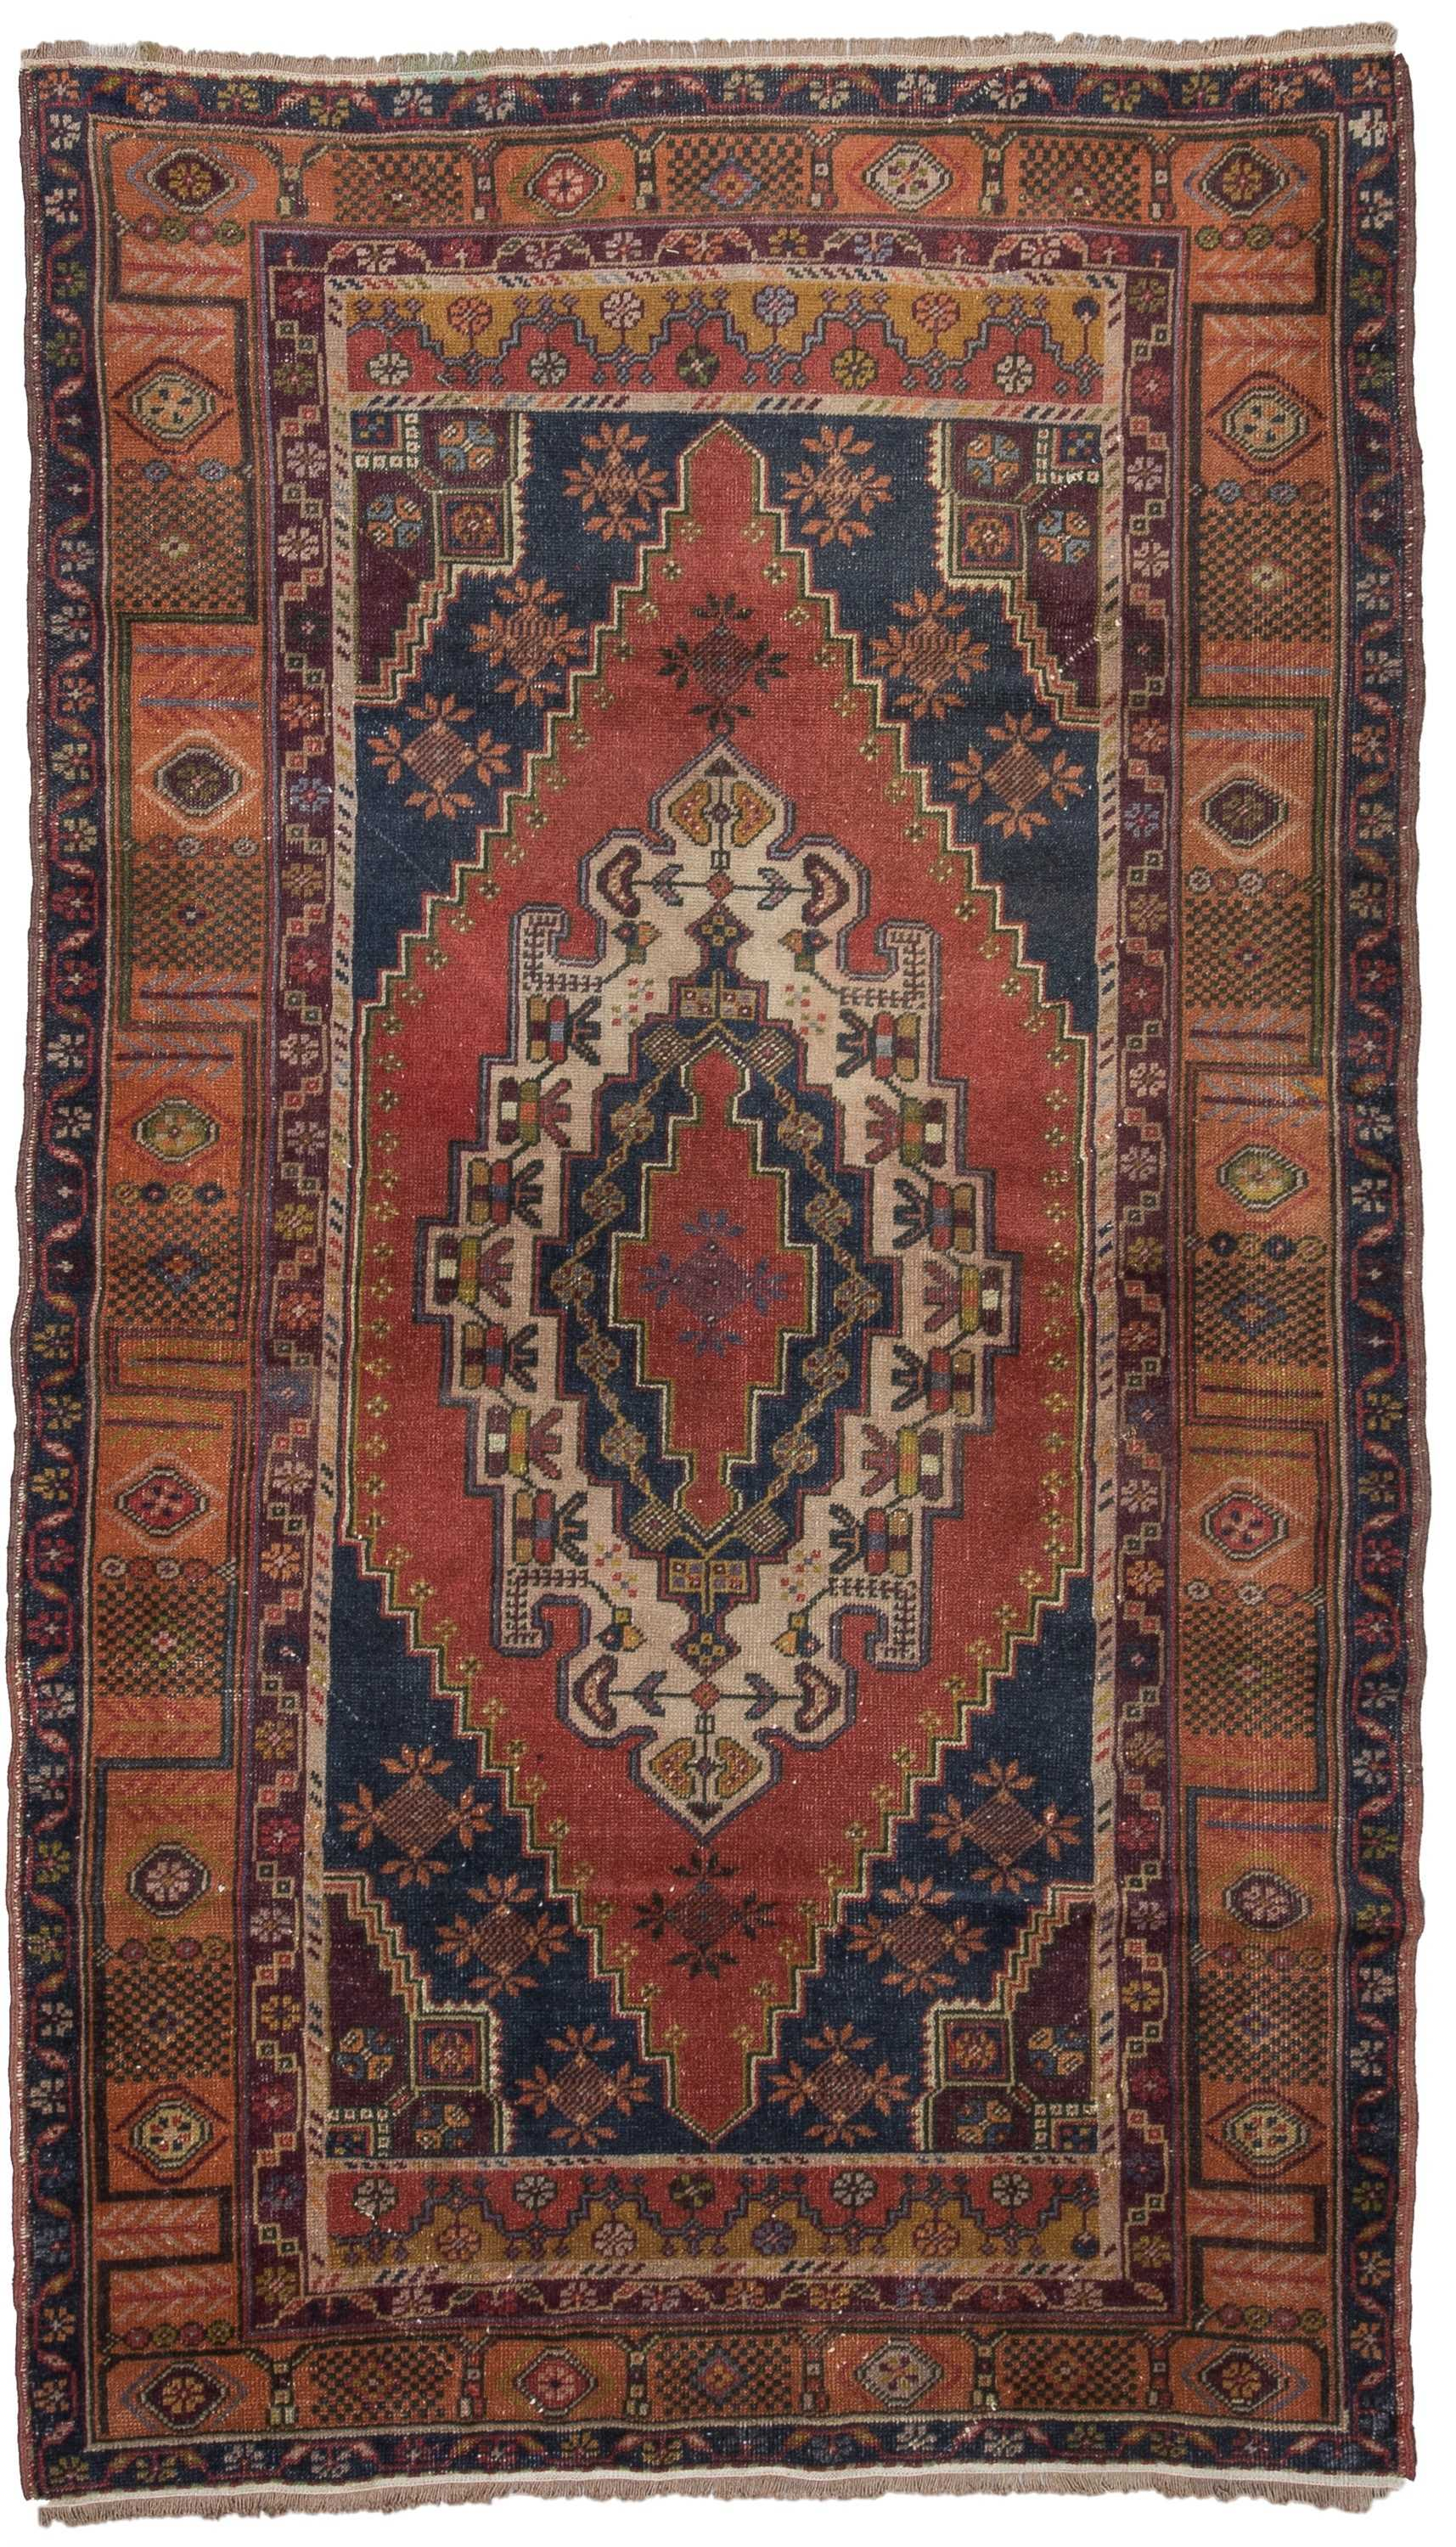 Vintage Turkish Rug 1464